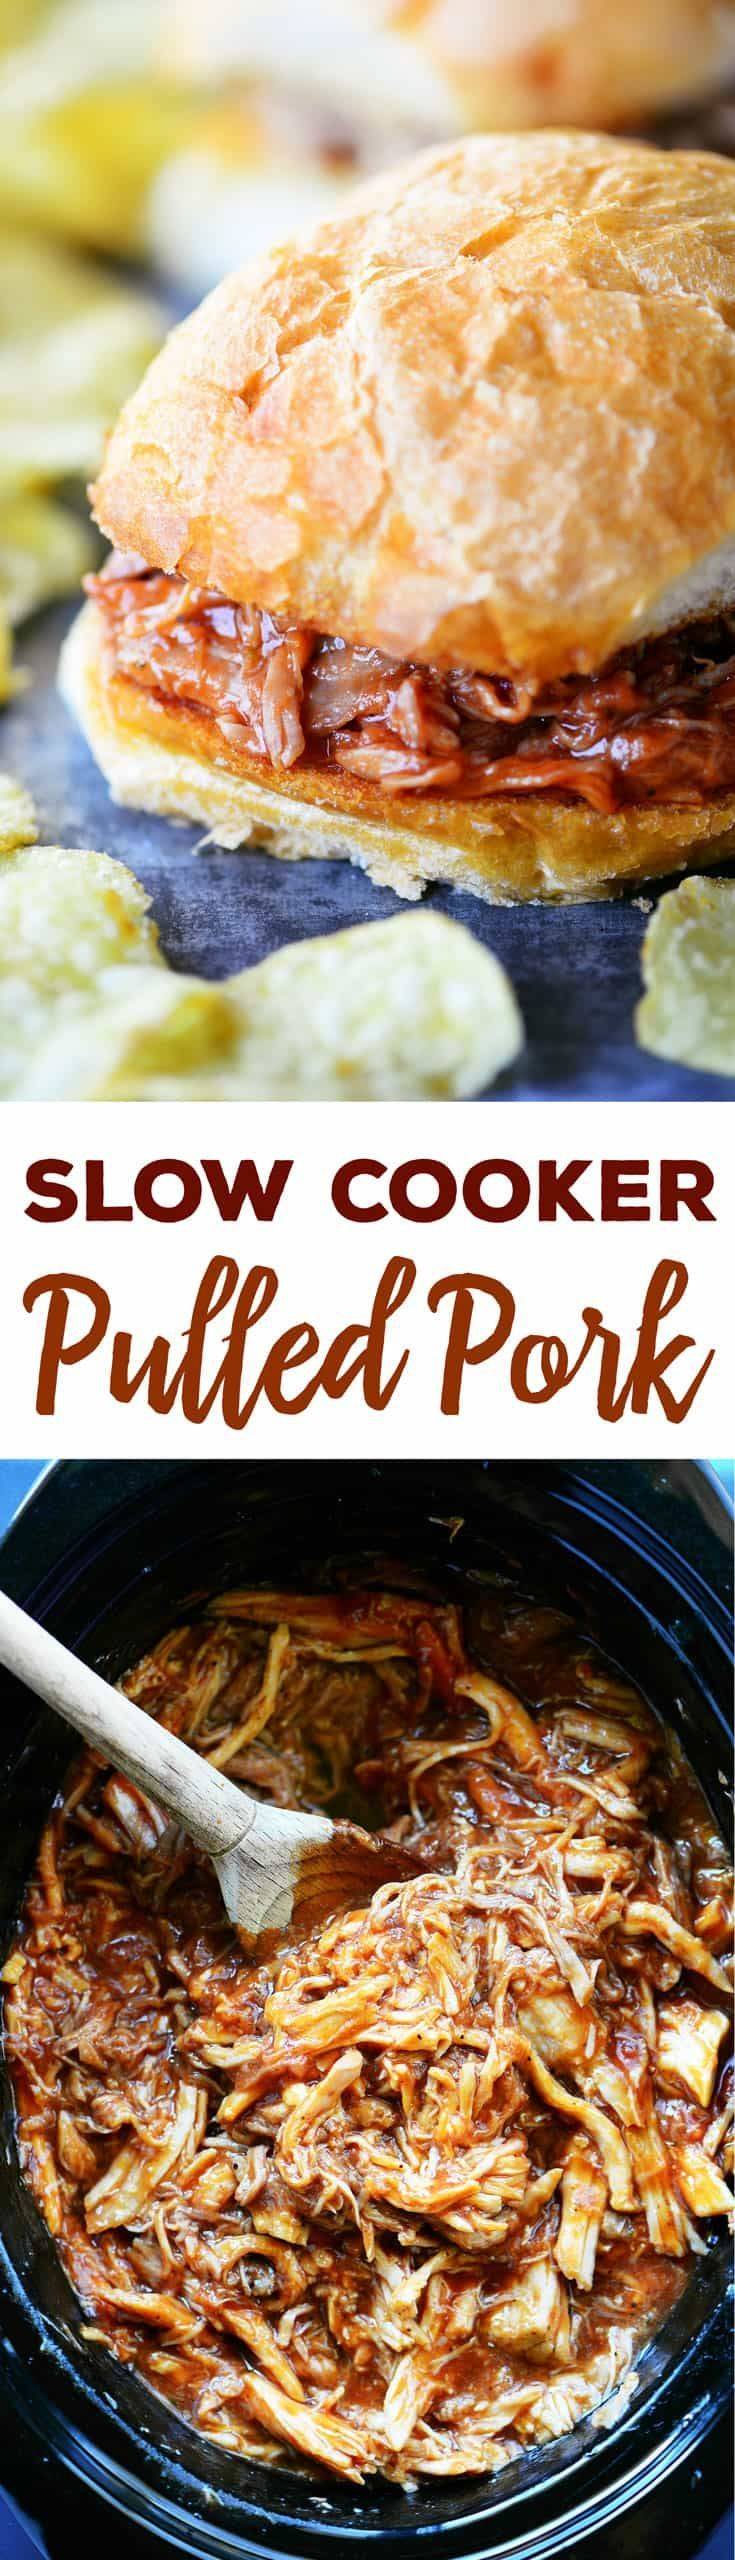 Easy Slow Cooker Pulled Pork recipe with only 4 ingredients! Cooks in the crock pot in 3-4 hours on high. Perfect for sandwiches, pork tacos, and pork fried rice. #slowcookerrecipes #pulledpork